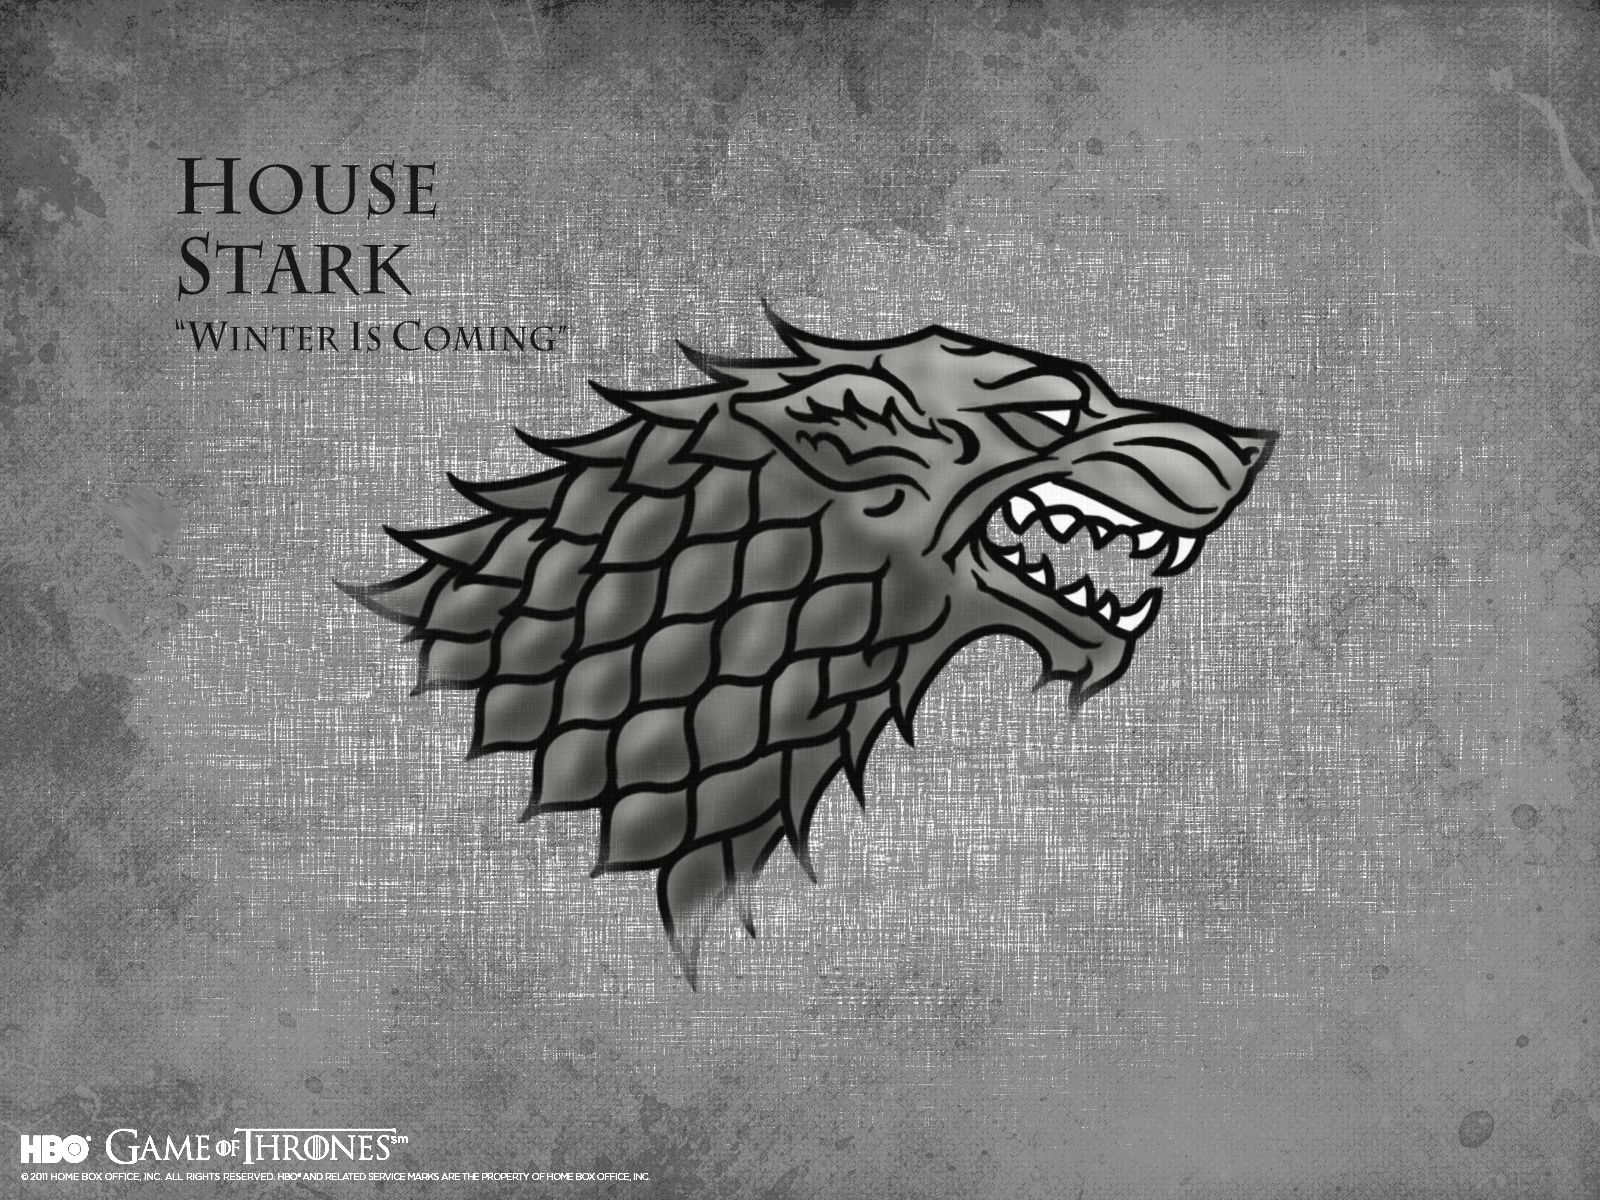 Game Of Thrones Wallpaper House Stark Game Of Thrones Houses Game Of Thrones Art House Stark